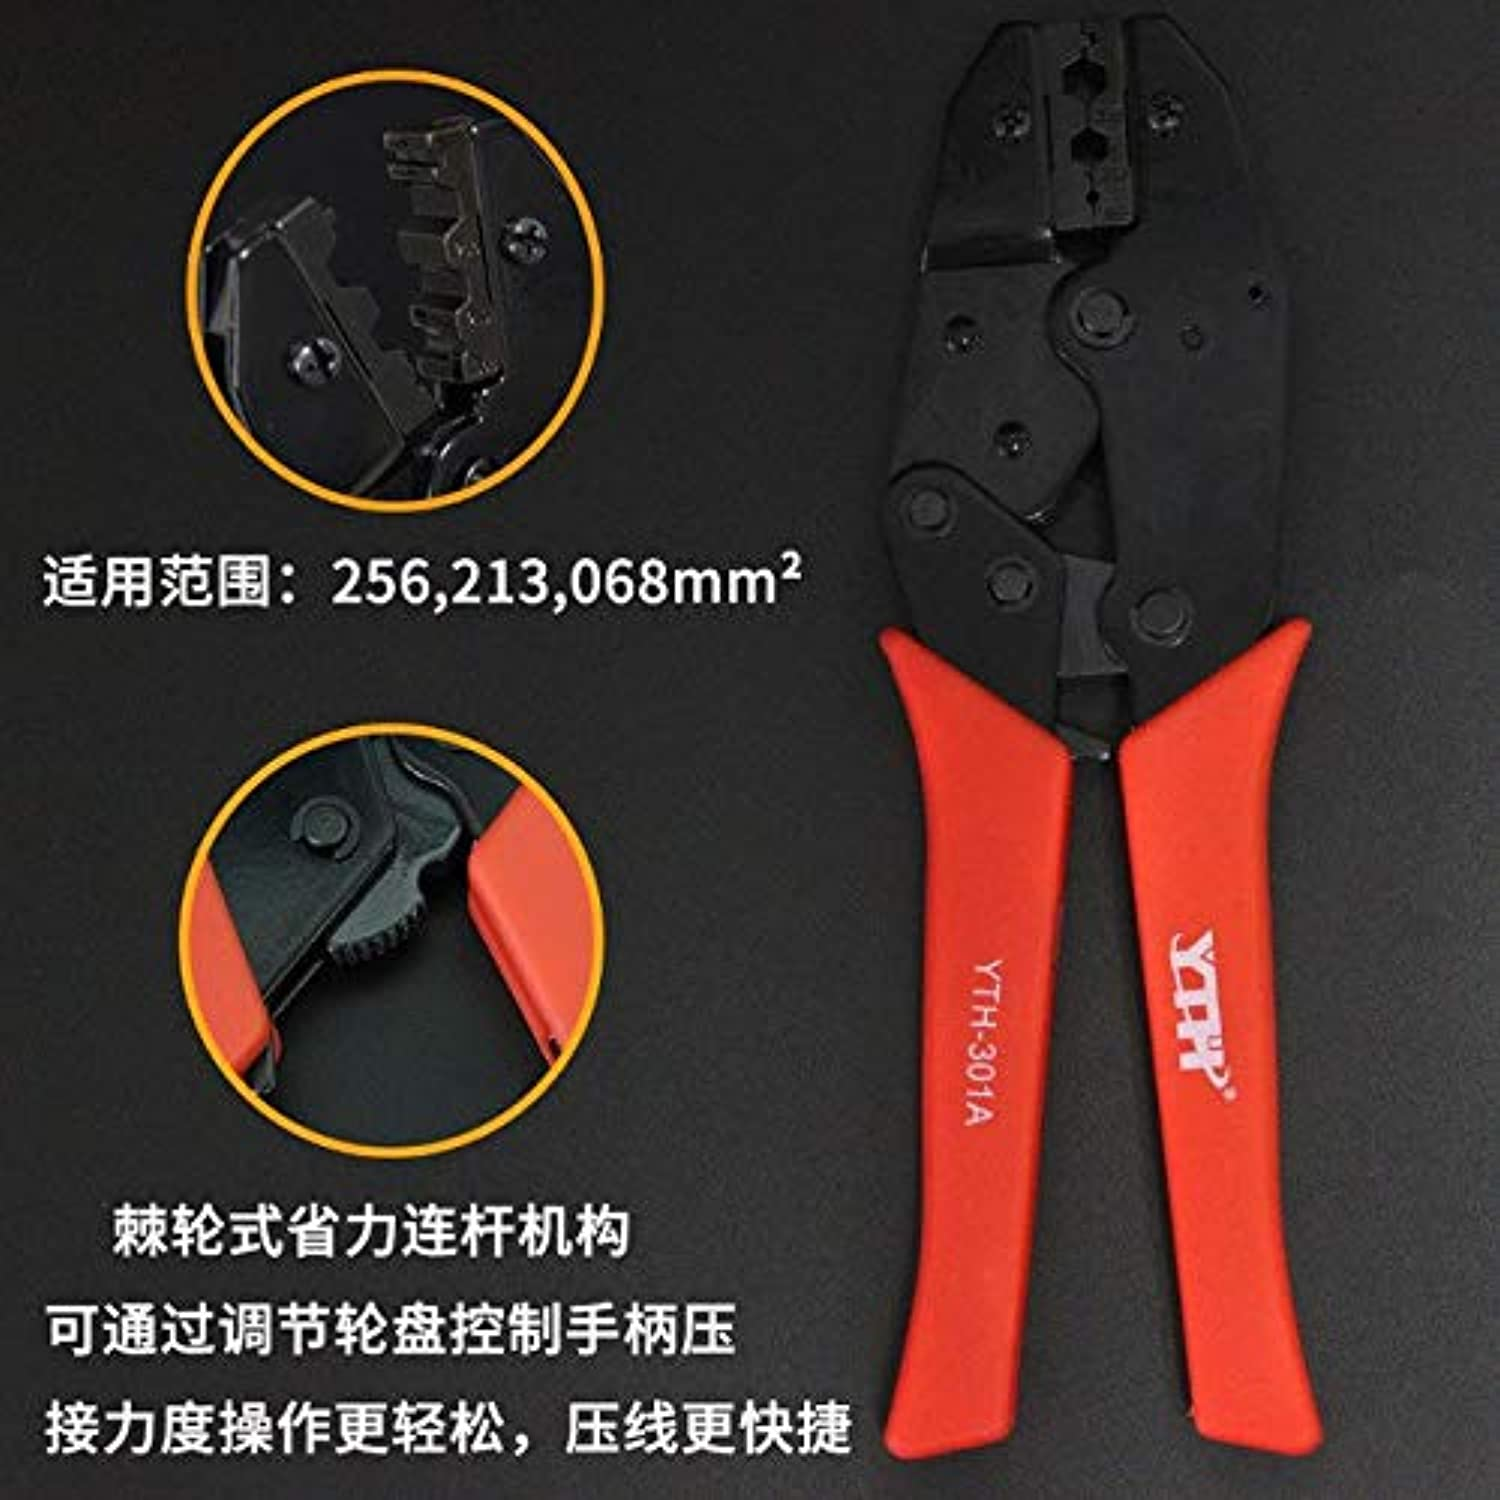 New Style Handle Tool European Wire Crimping Pliers,Terminal clamp Pliers Wire Cutting Mould Crimping Tool Crimping Pliers   YTH-301A